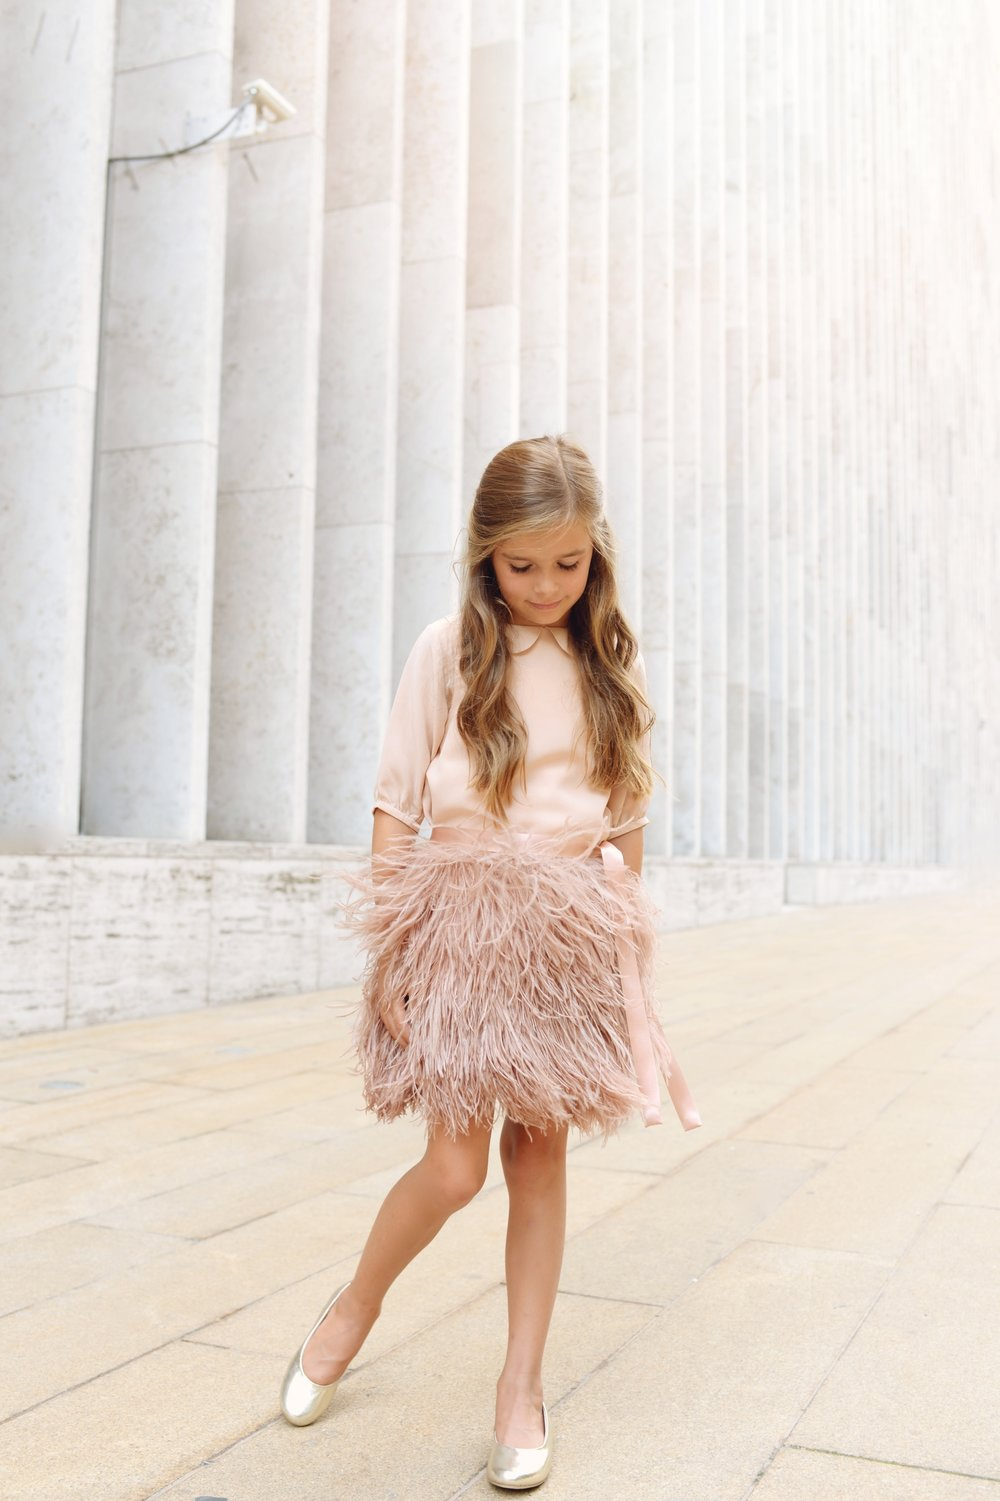 Enfant+Street+Style+by+Gina+Kim+Photography+Pale+Cloud-3.jpeg